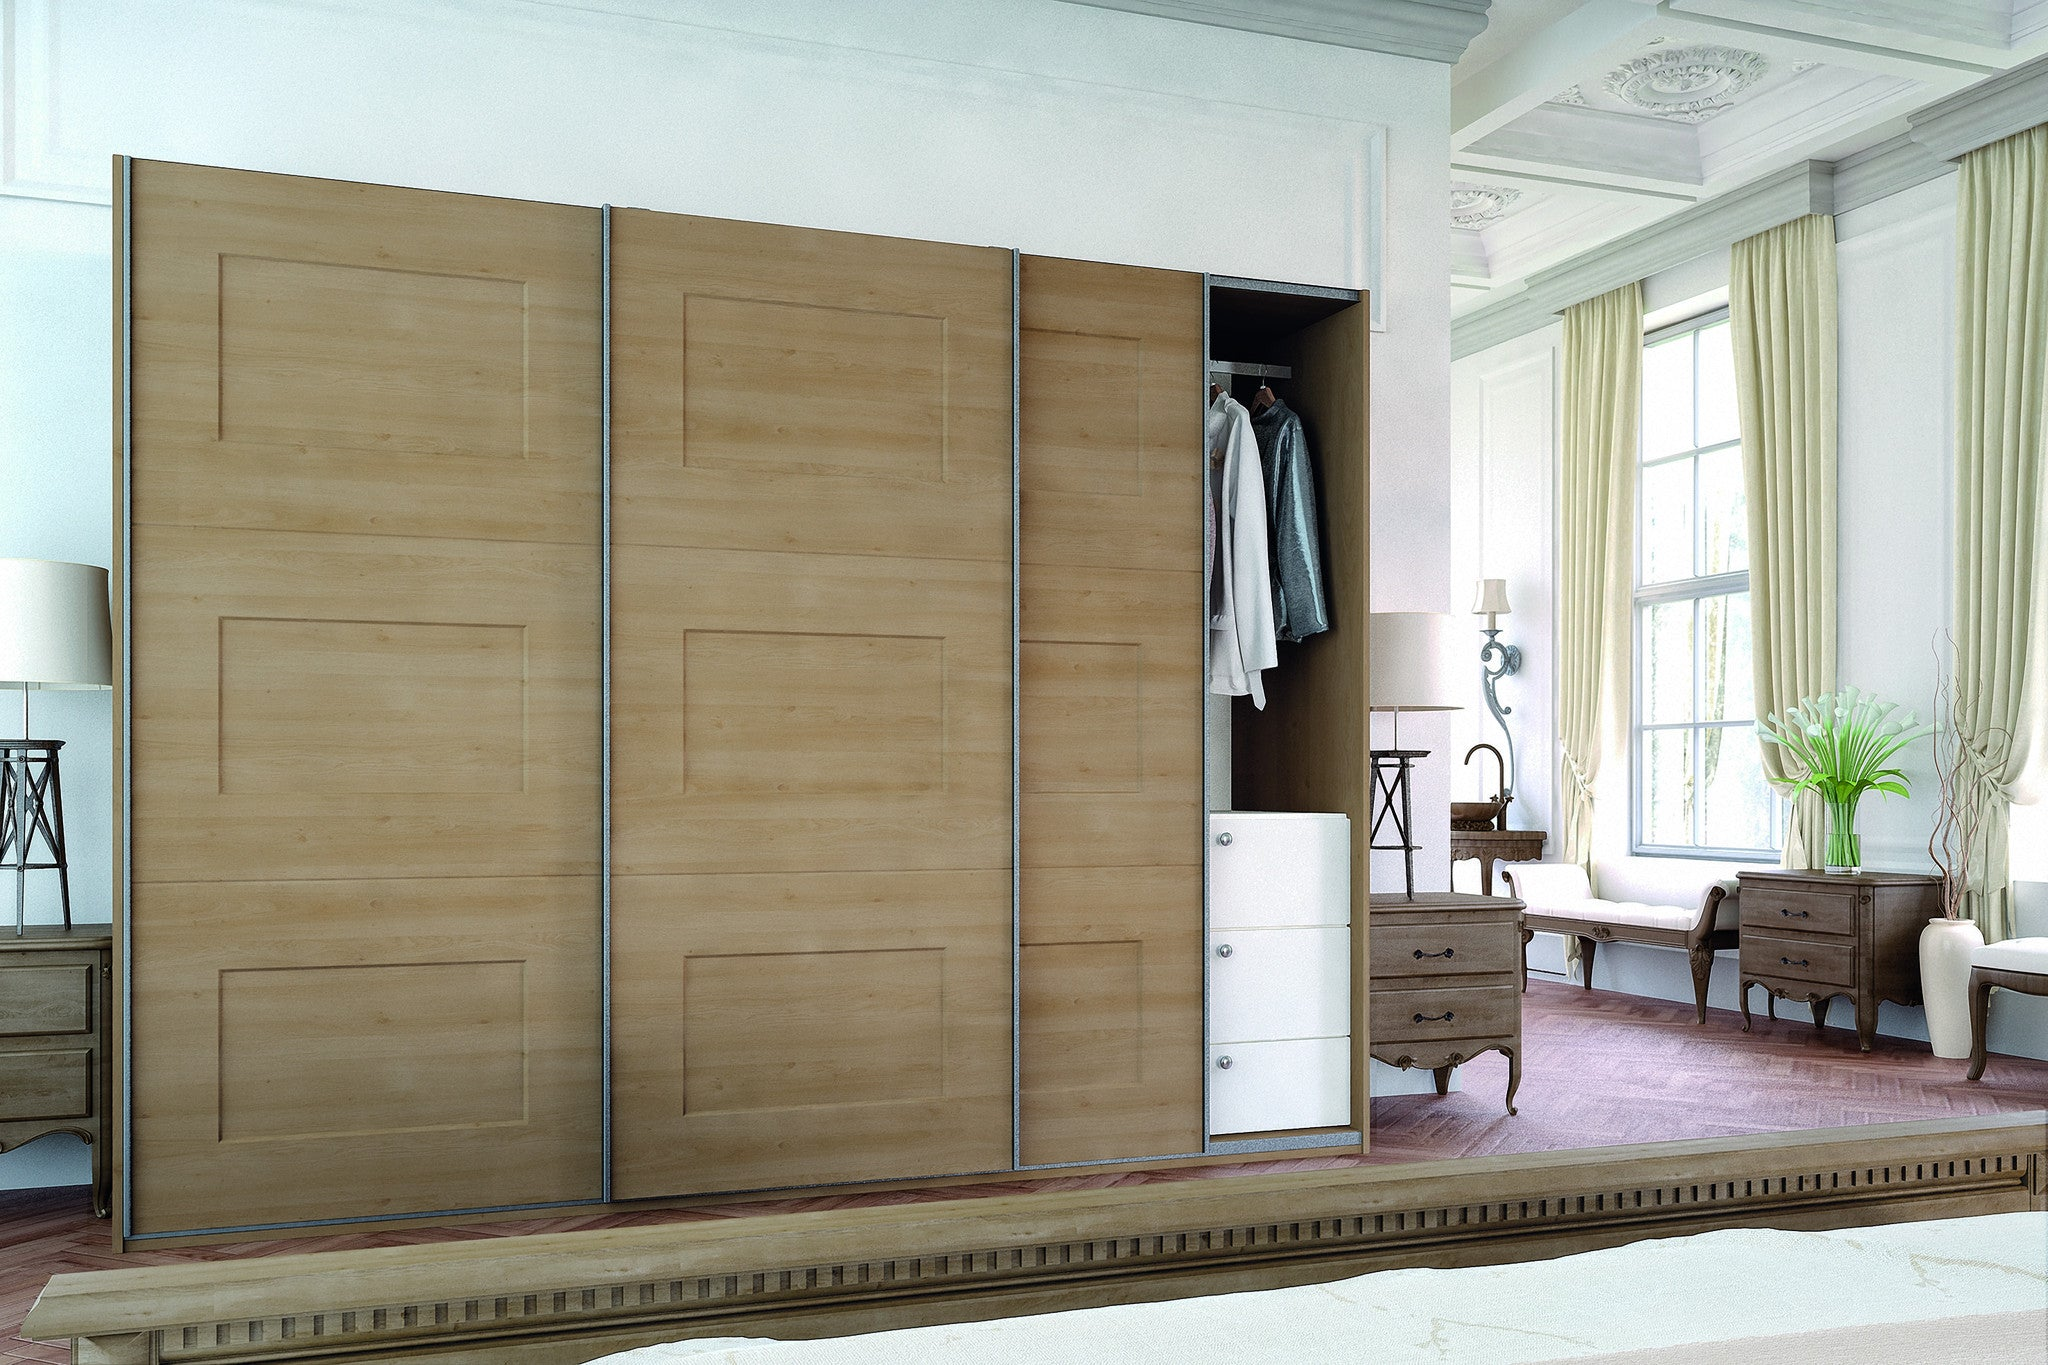 Unique Odessa Oak Cambridge Glidor wardrobe